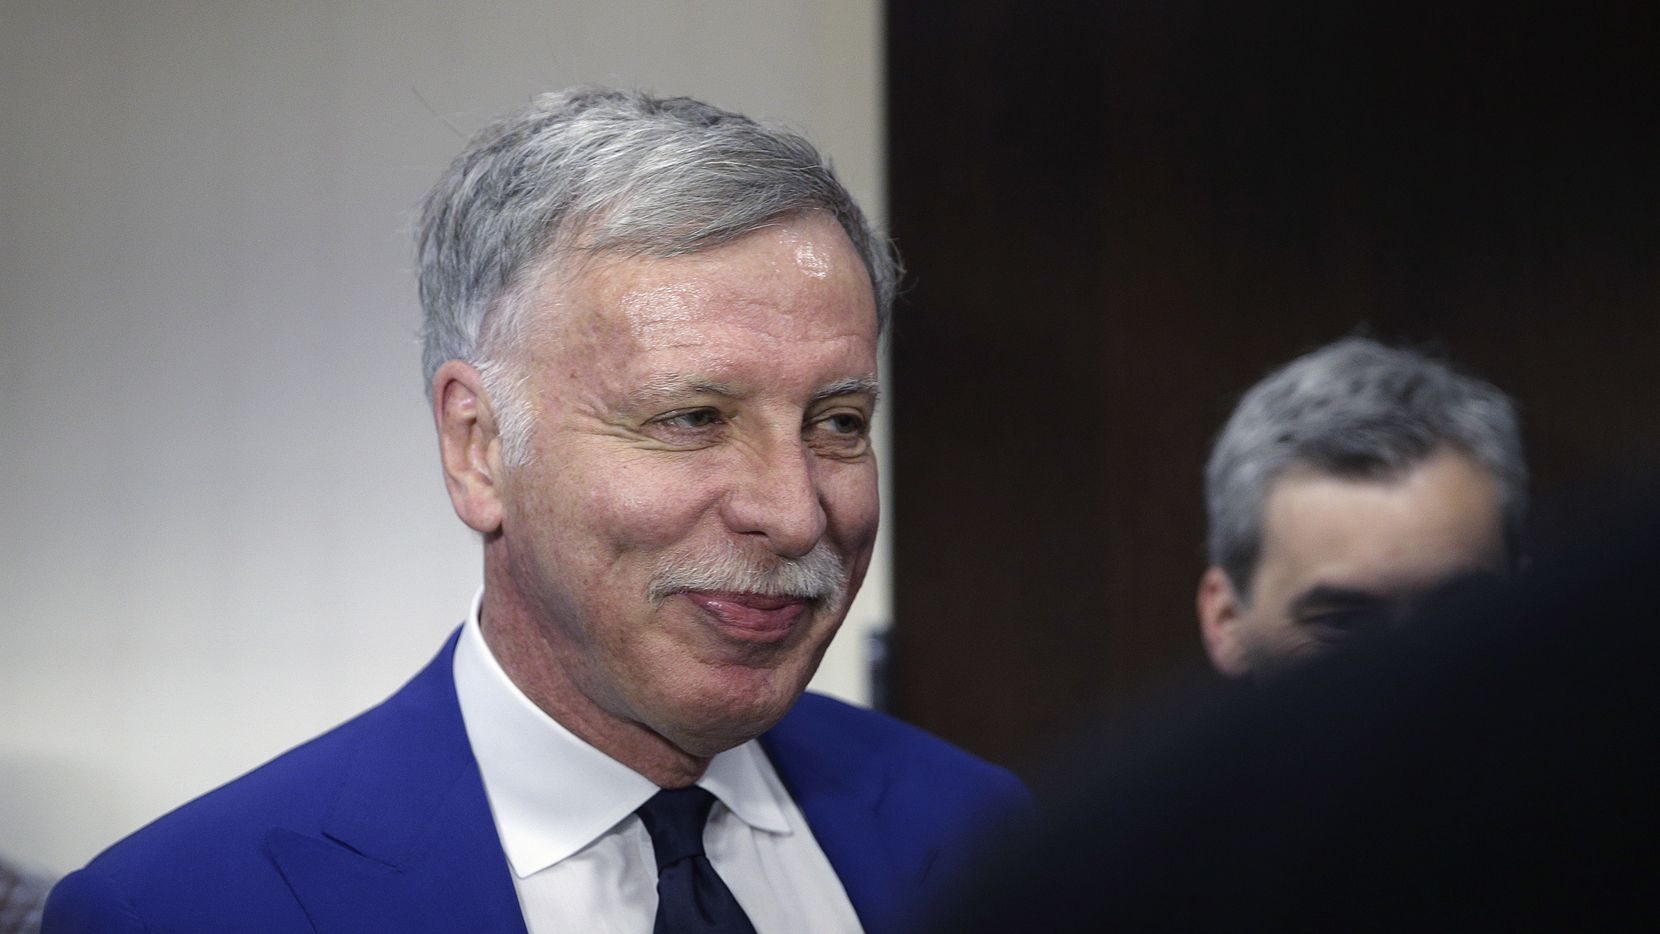 Los Angeles Rams owner Stan Kroenke attends a news conference in Los Angeles. Kroenke bought the Waggoner Ranch in Feburary. Now, residents around Lake Diversion 30 miles west of Wichita Falls will have to leave their homes by the end of February (AP Photo/Jae C. Hong, File)